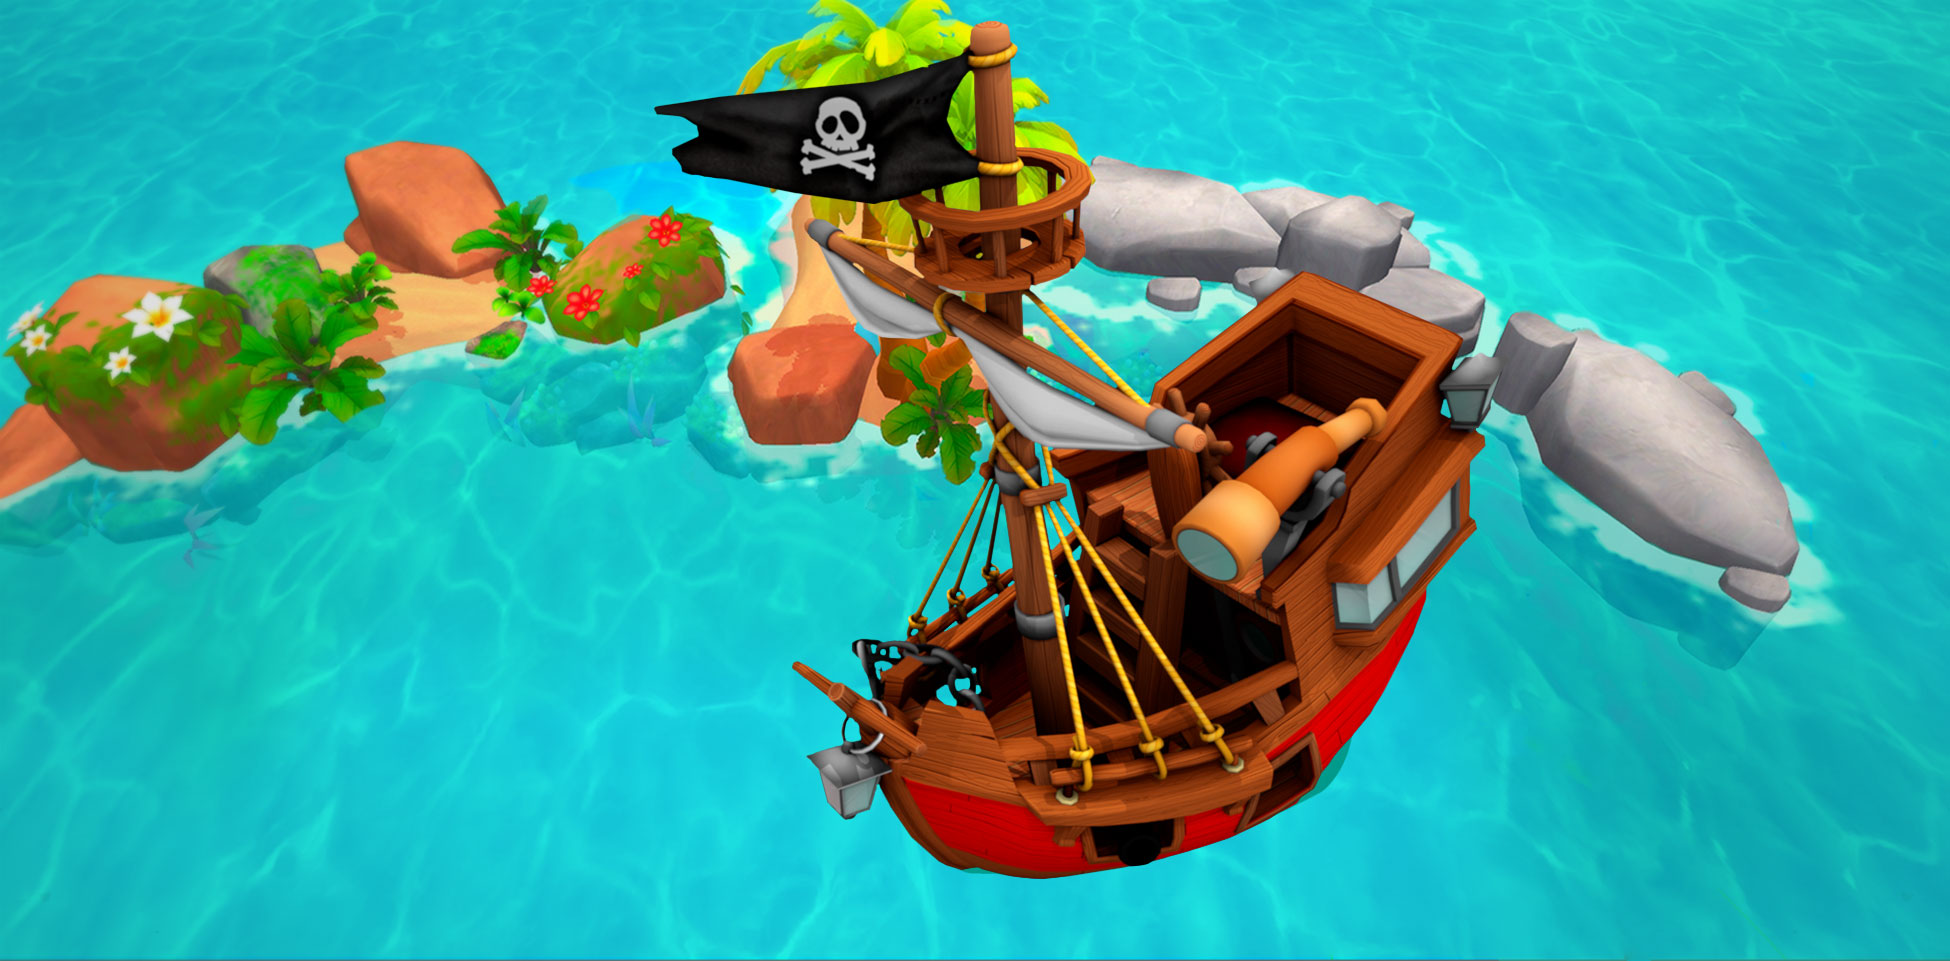 images/slider/3D_Cartoon_Prop_PirateShip.jpg